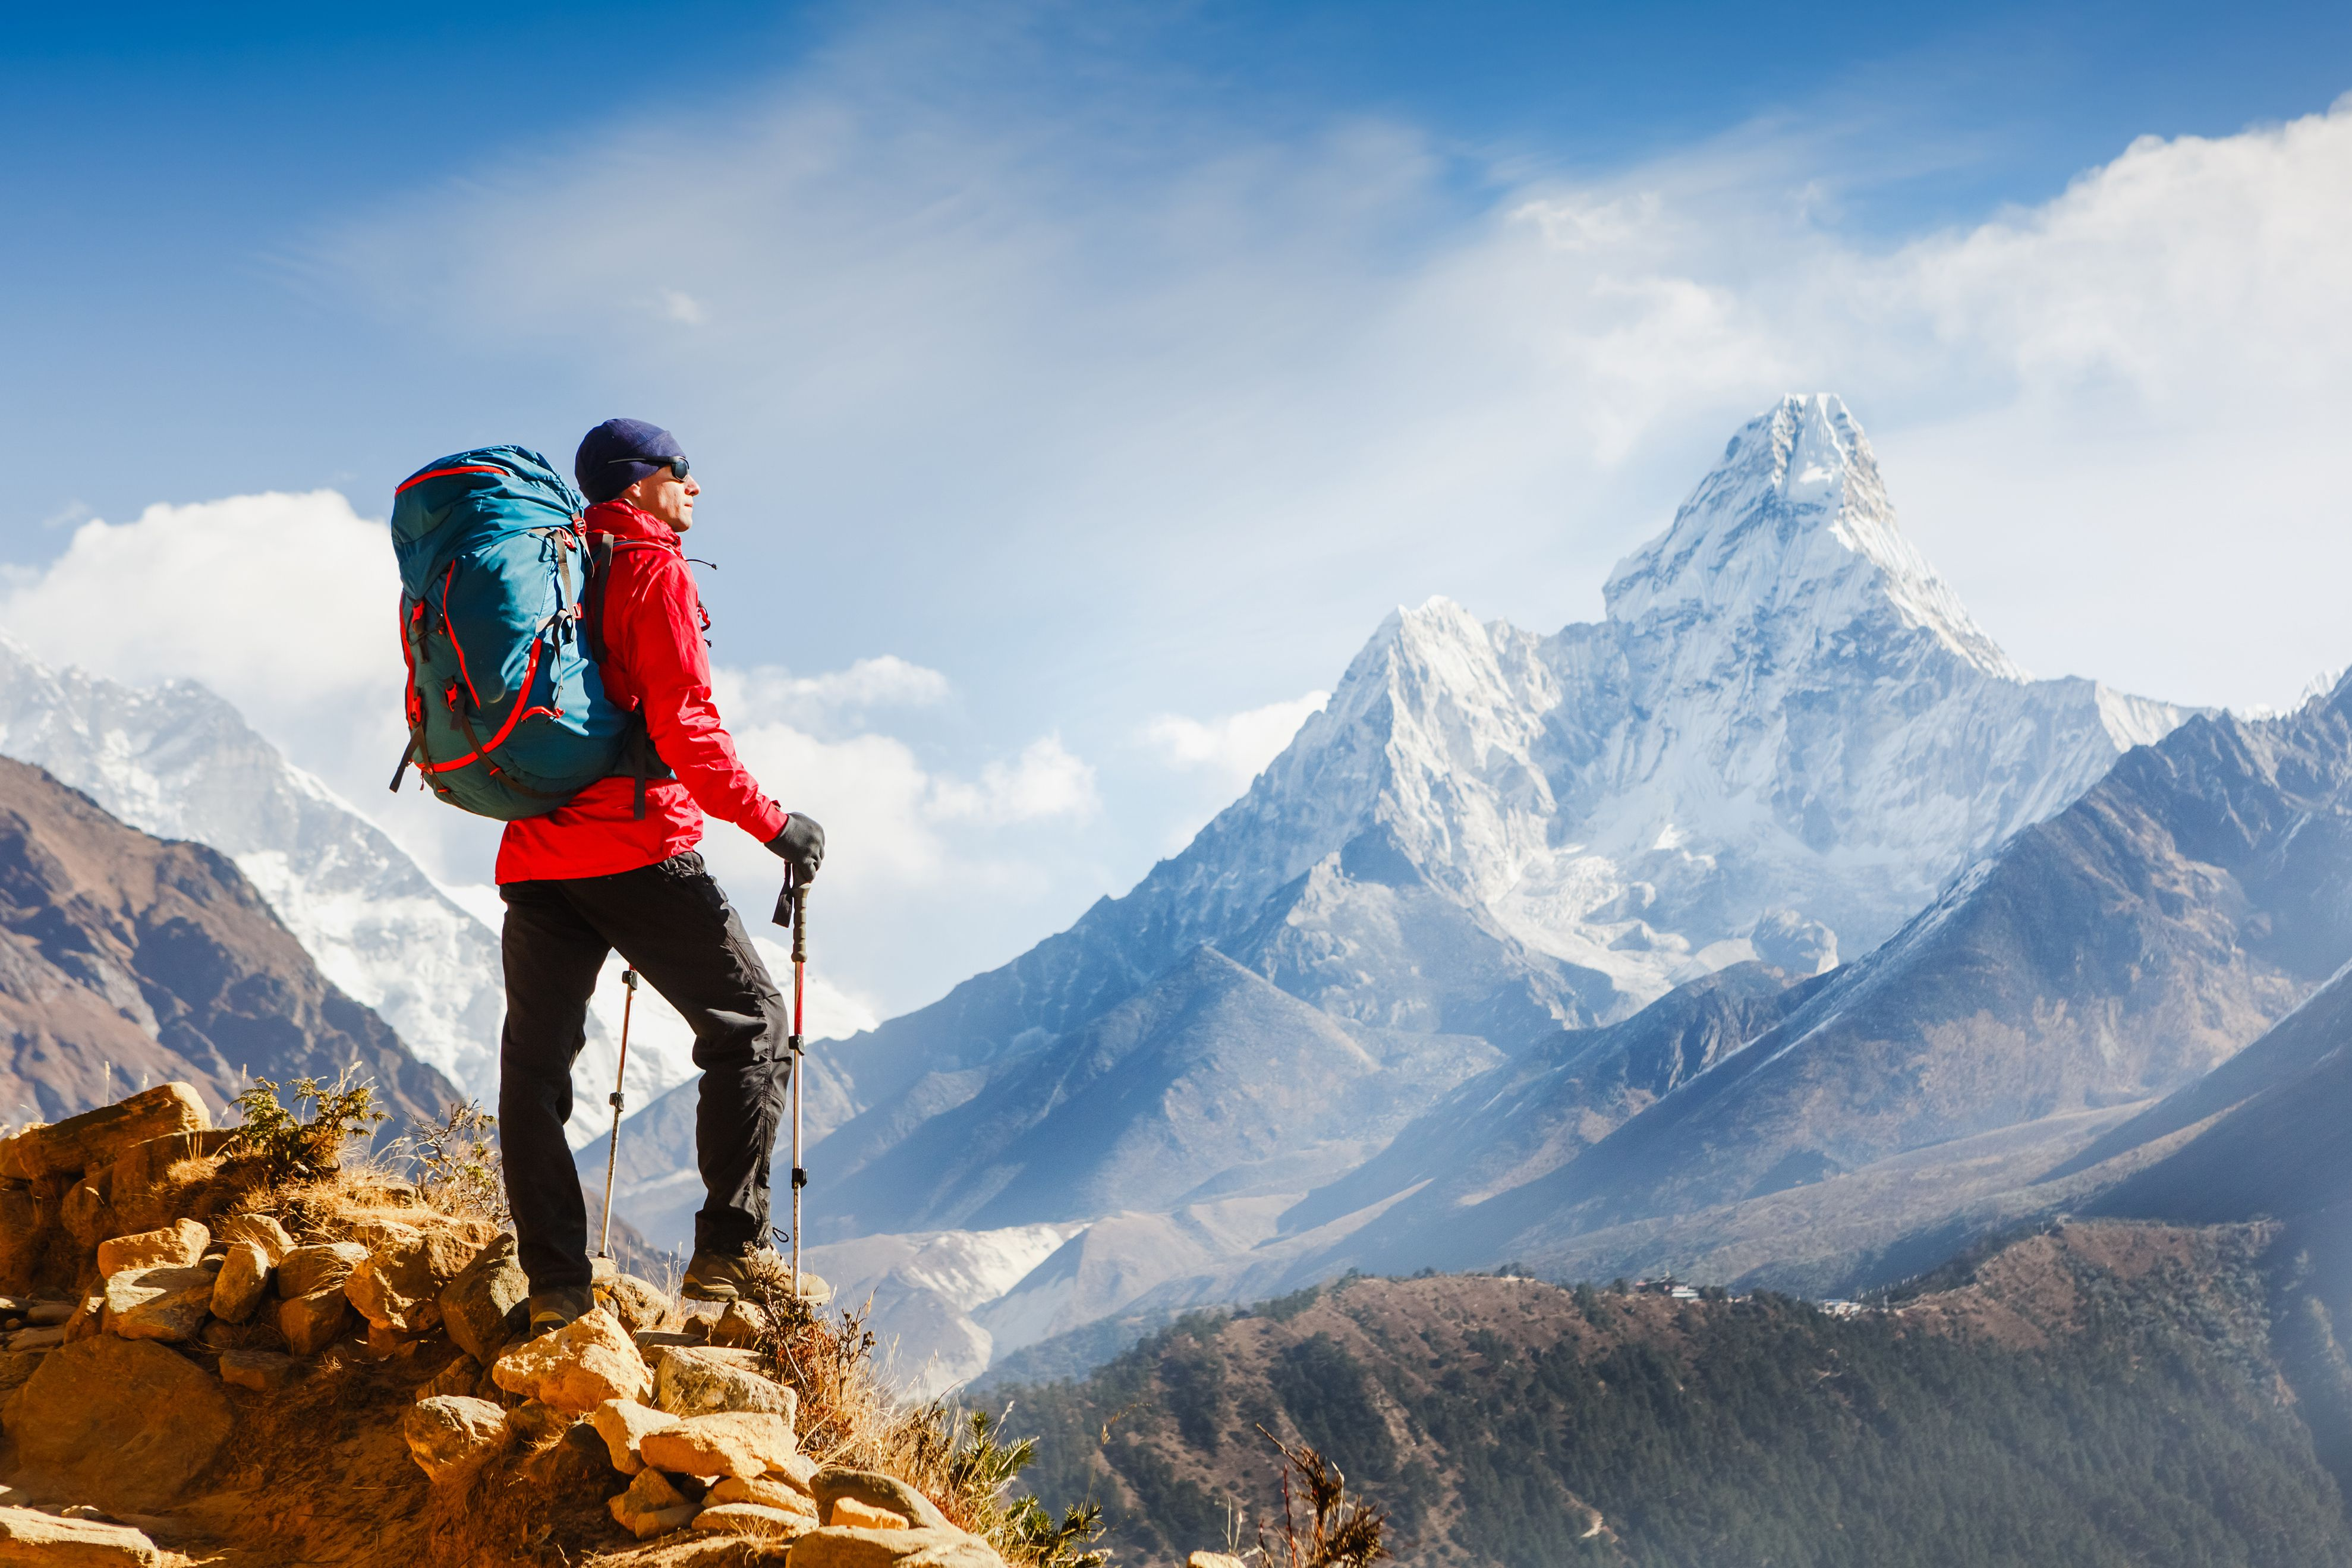 A hiker looking at the view in front of him |  Photo: Shutterstock